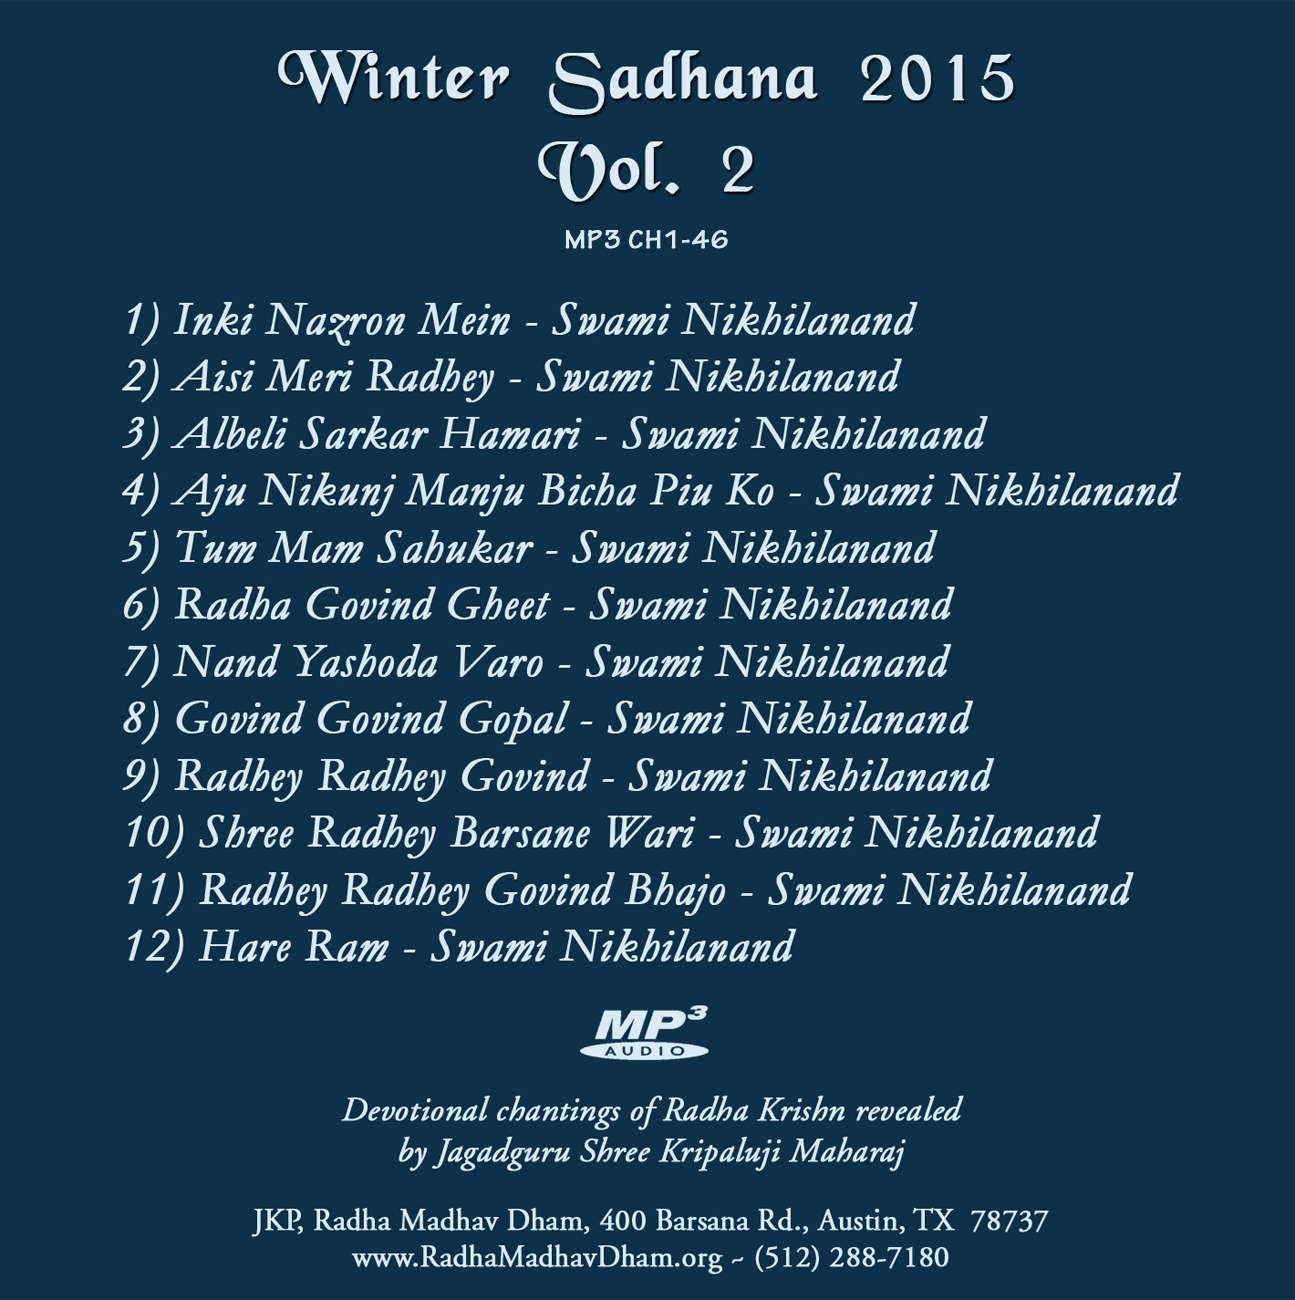 List of Kirtans on Ch1-46 MP3 Winter Sadhana 2015Vol 2